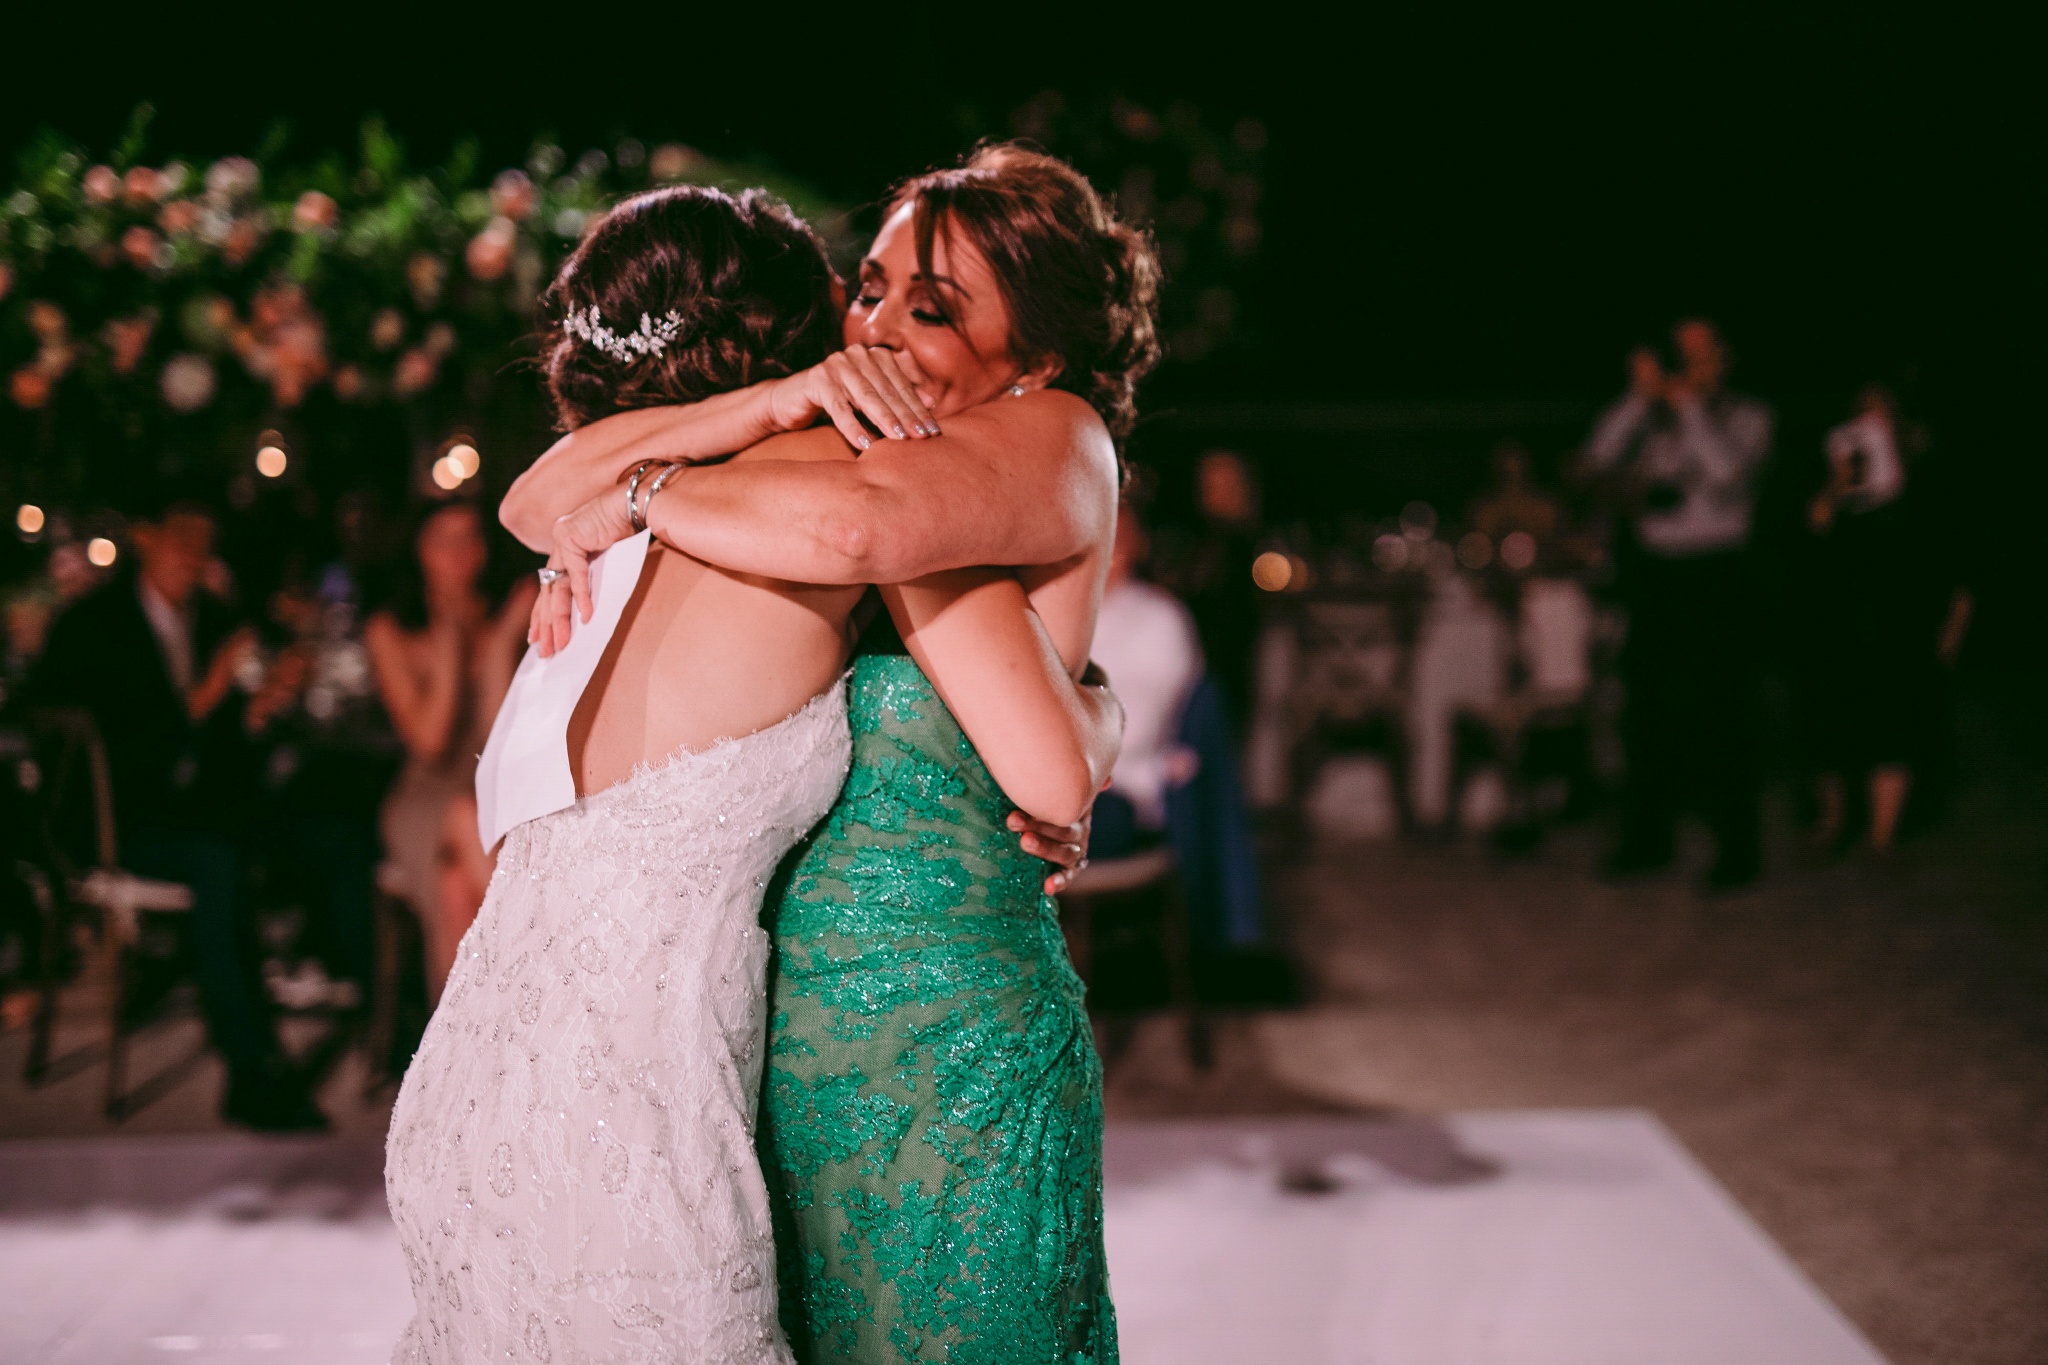 san diego wedding   photographer | woman in green dress hugs bride whil holding piece of paper   behind bride